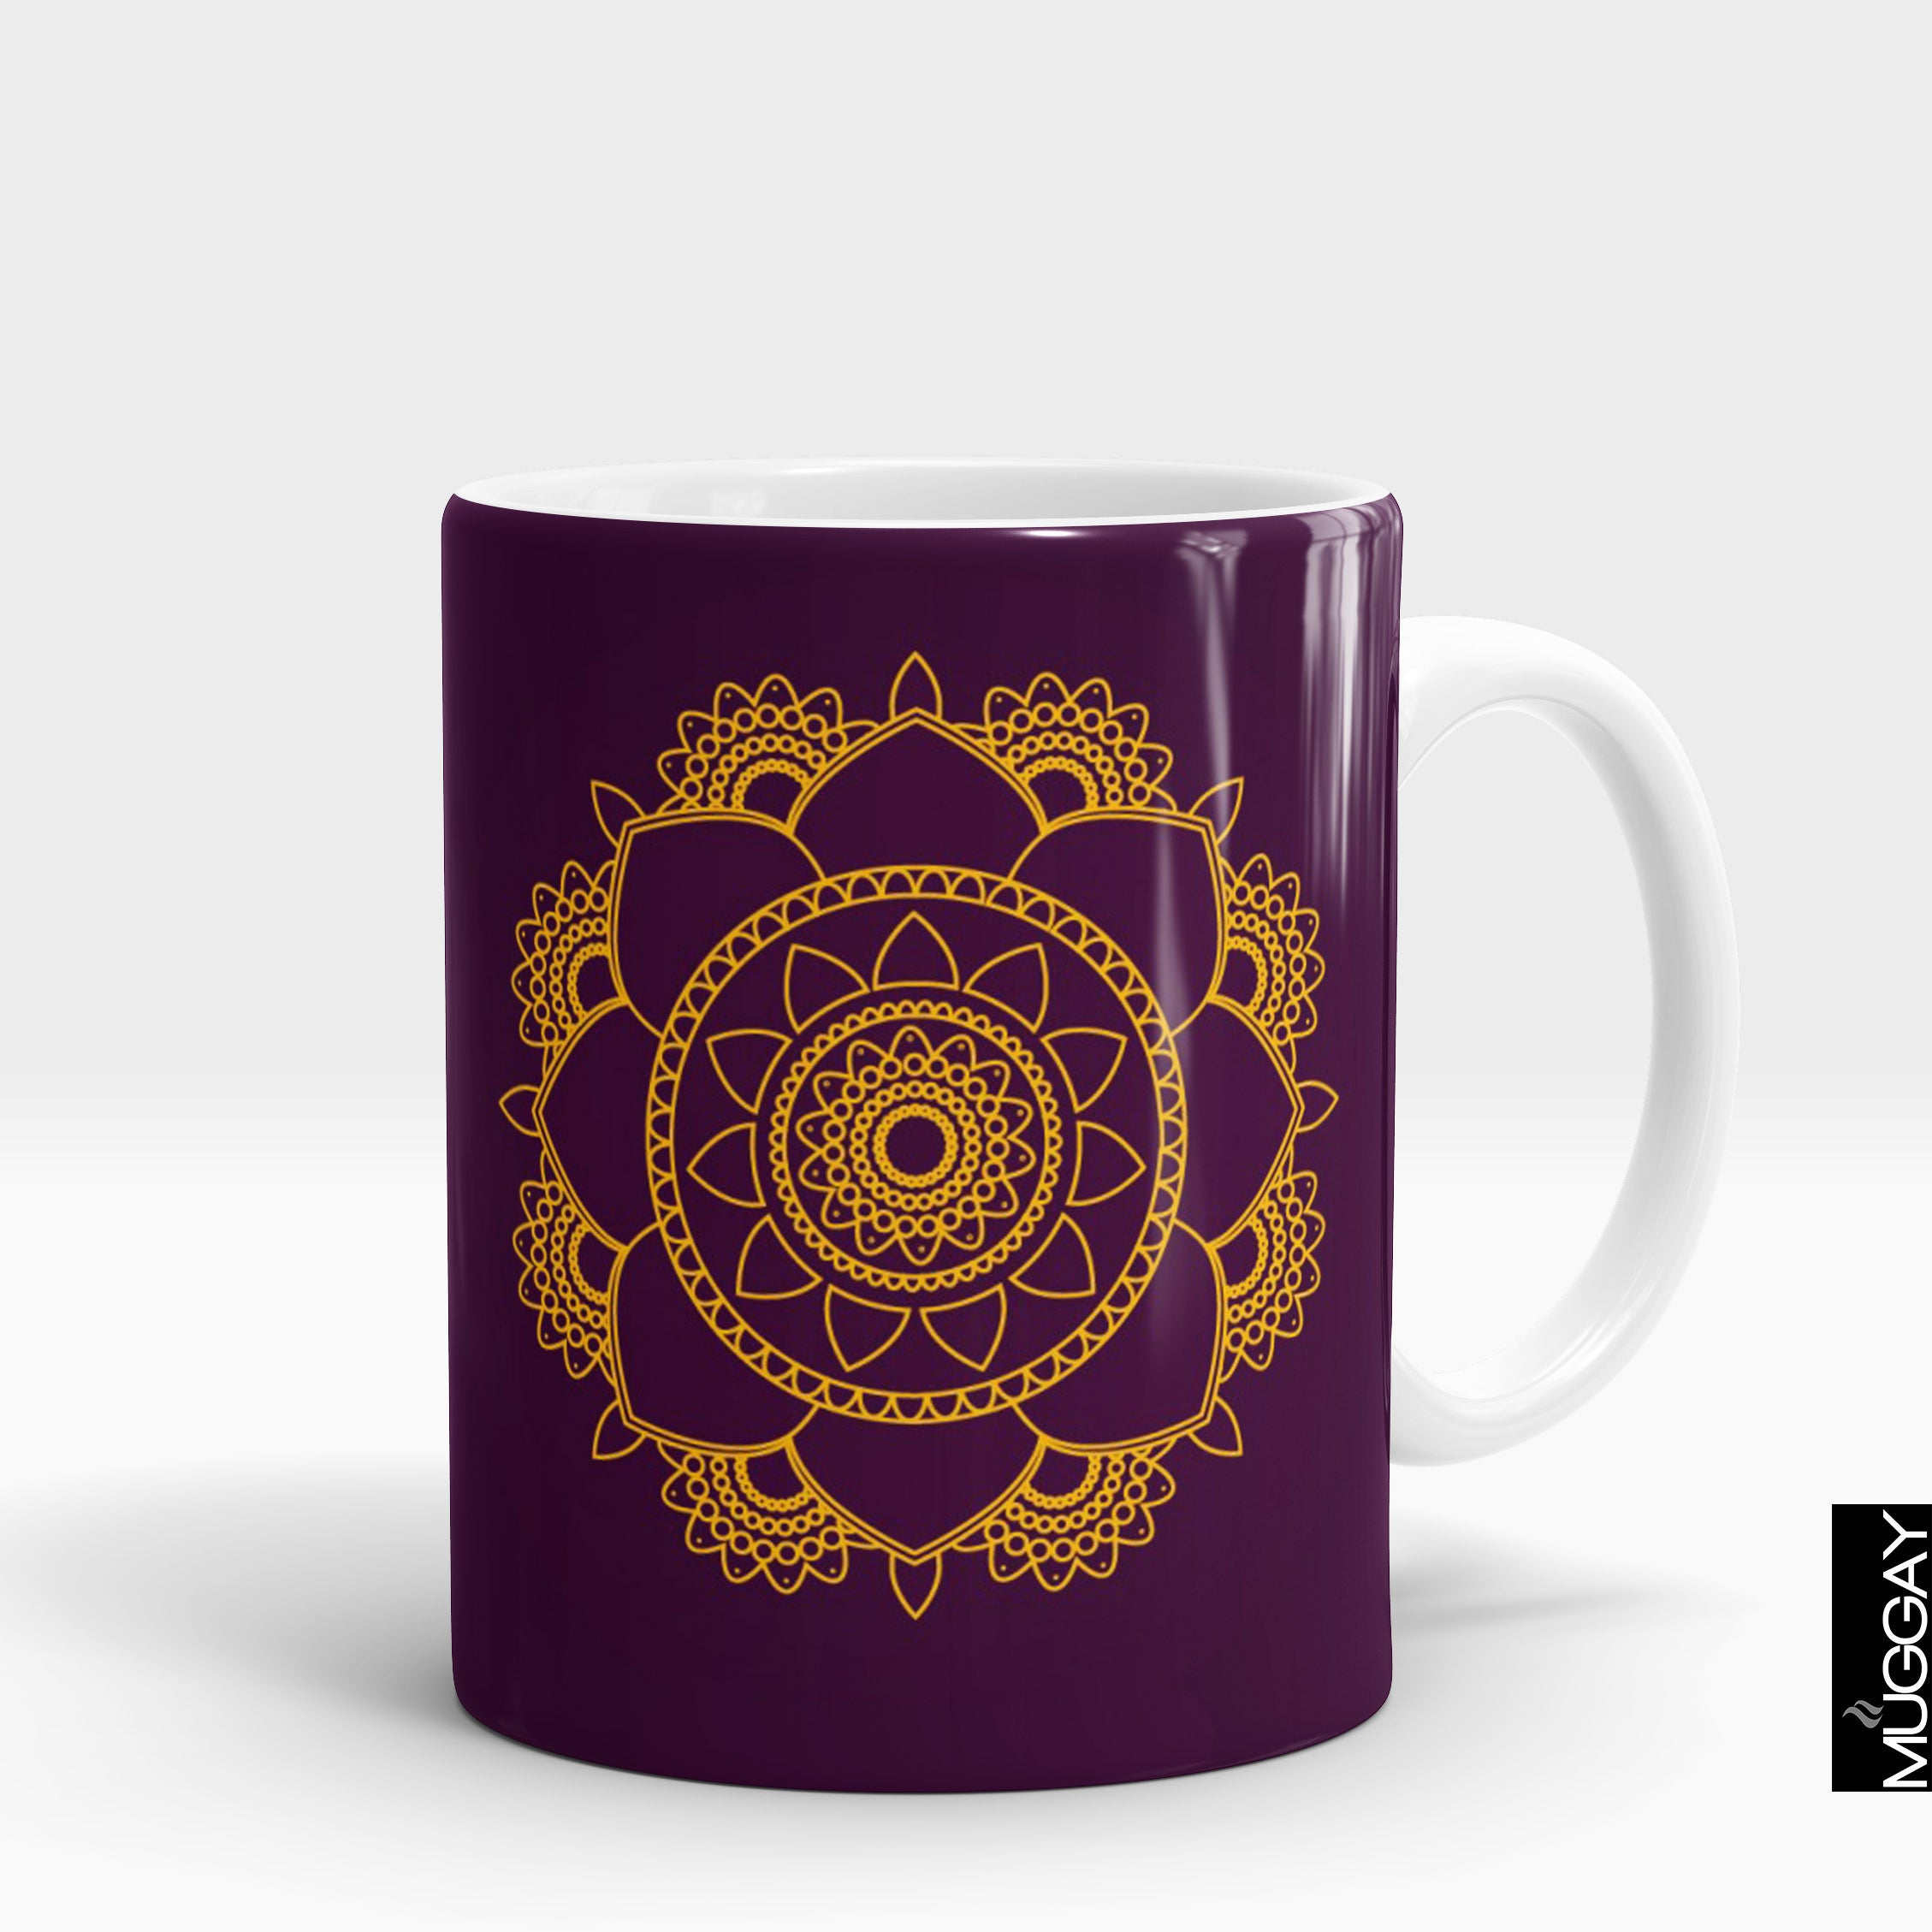 Mandala art mugs -7